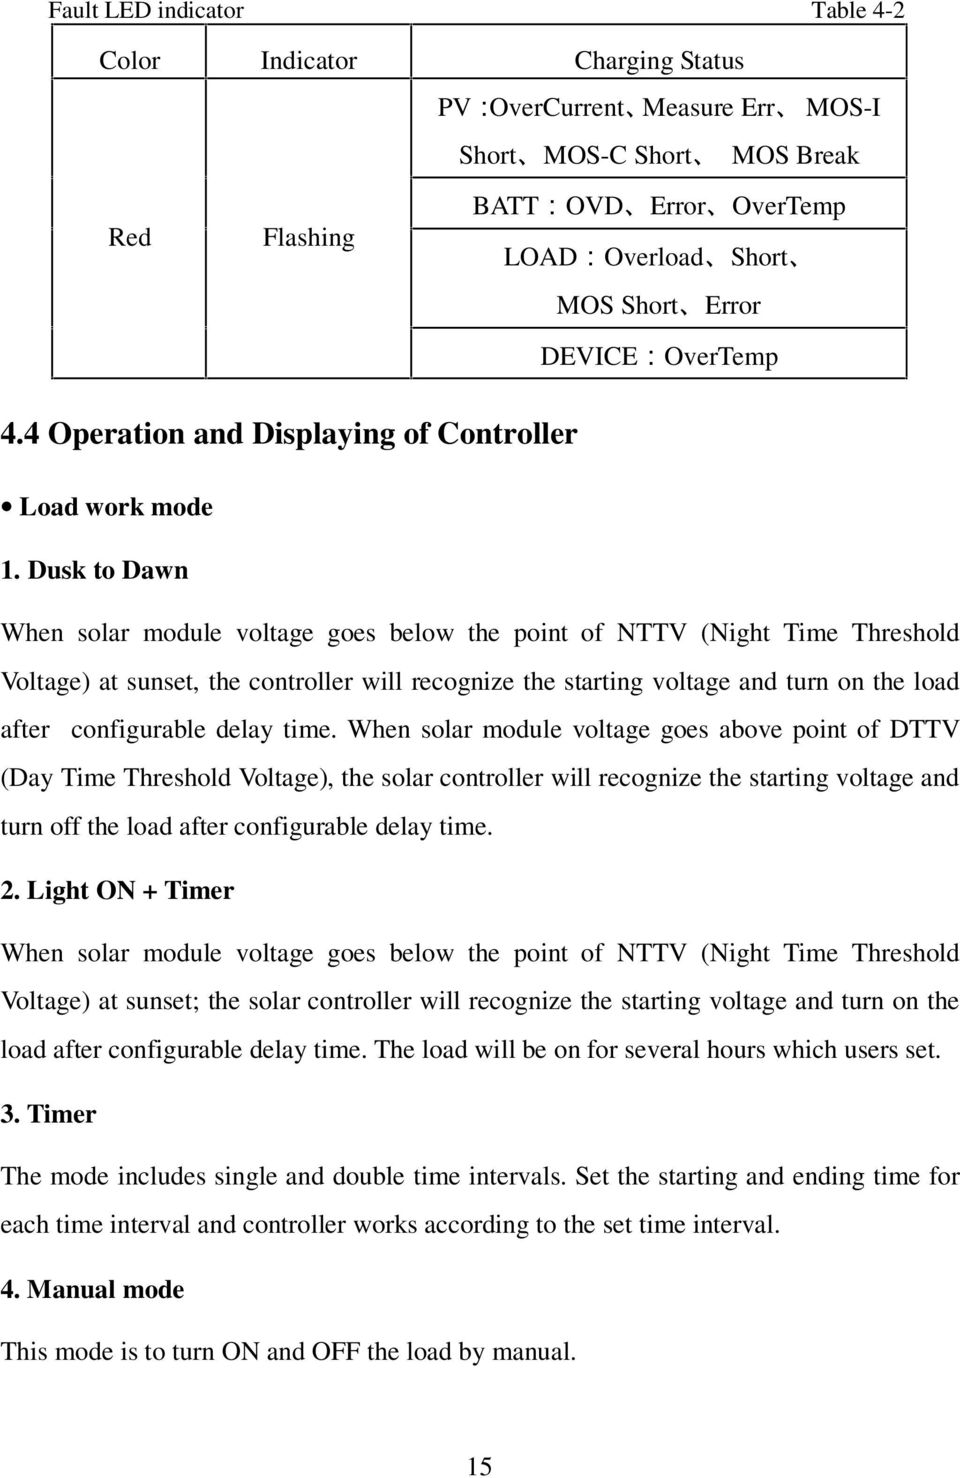 Dusk to Dawn When solar module voltage goes below the point of NTTV (Night Time Threshold Voltage) at sunset, the controller will recognize the starting voltage and turn on the load after